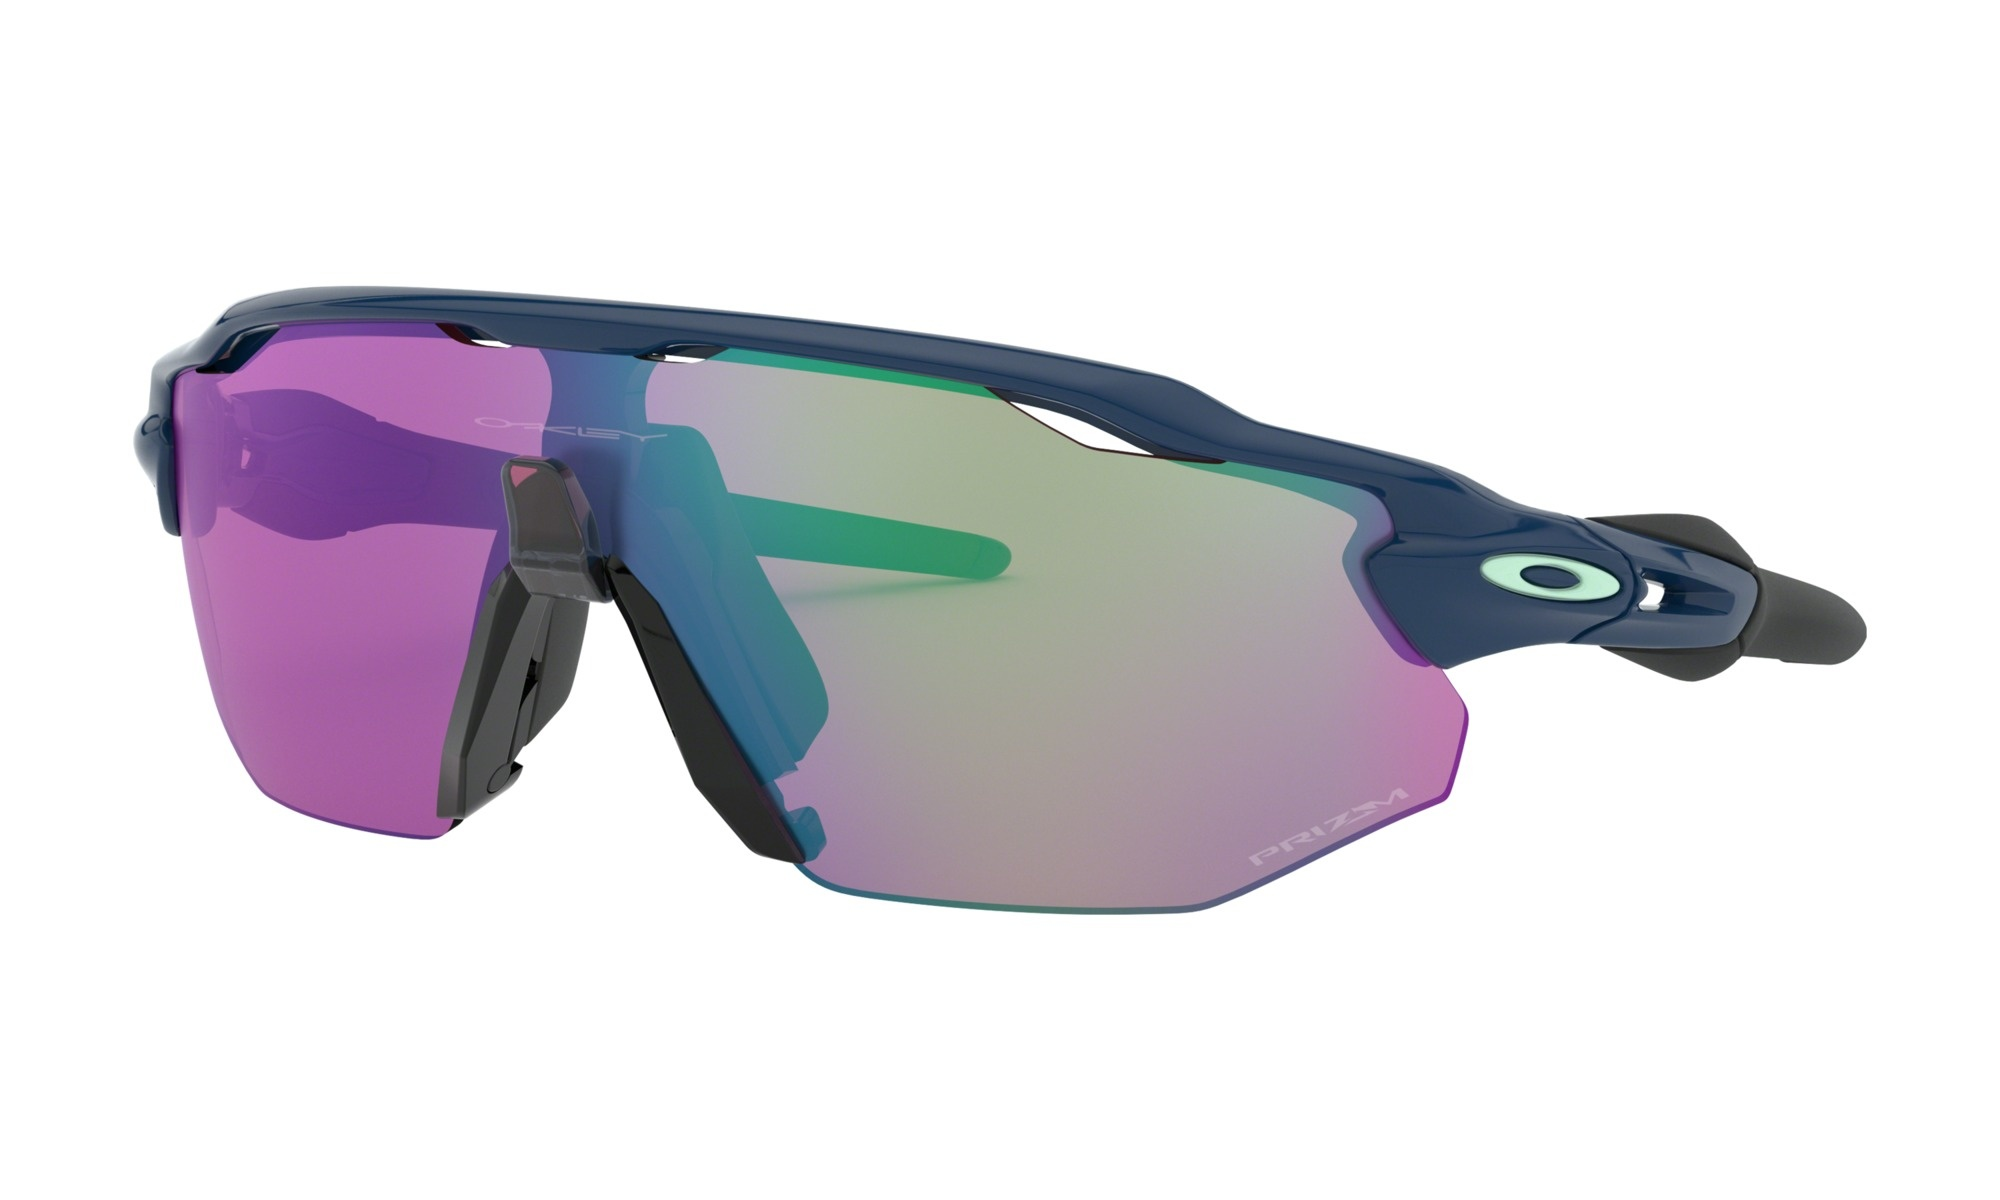 Oakley Radar EV Adancer Poseidon W/ Prizm Golf-Trail